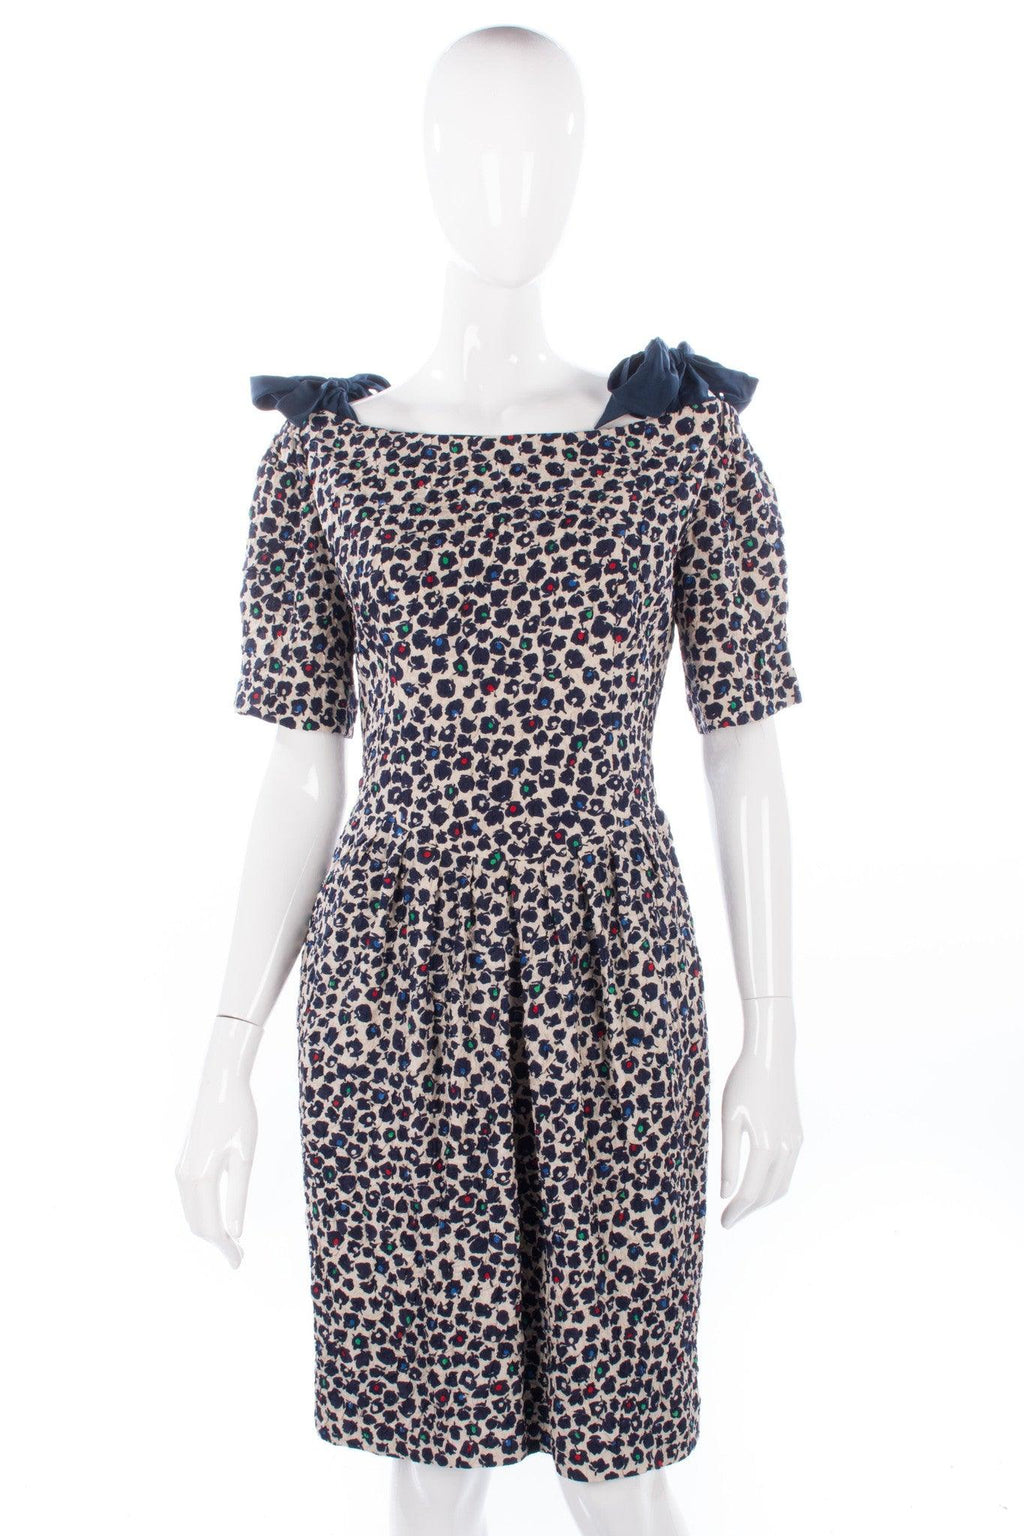 Beatrice Hypendahl dress size 8 white and blue